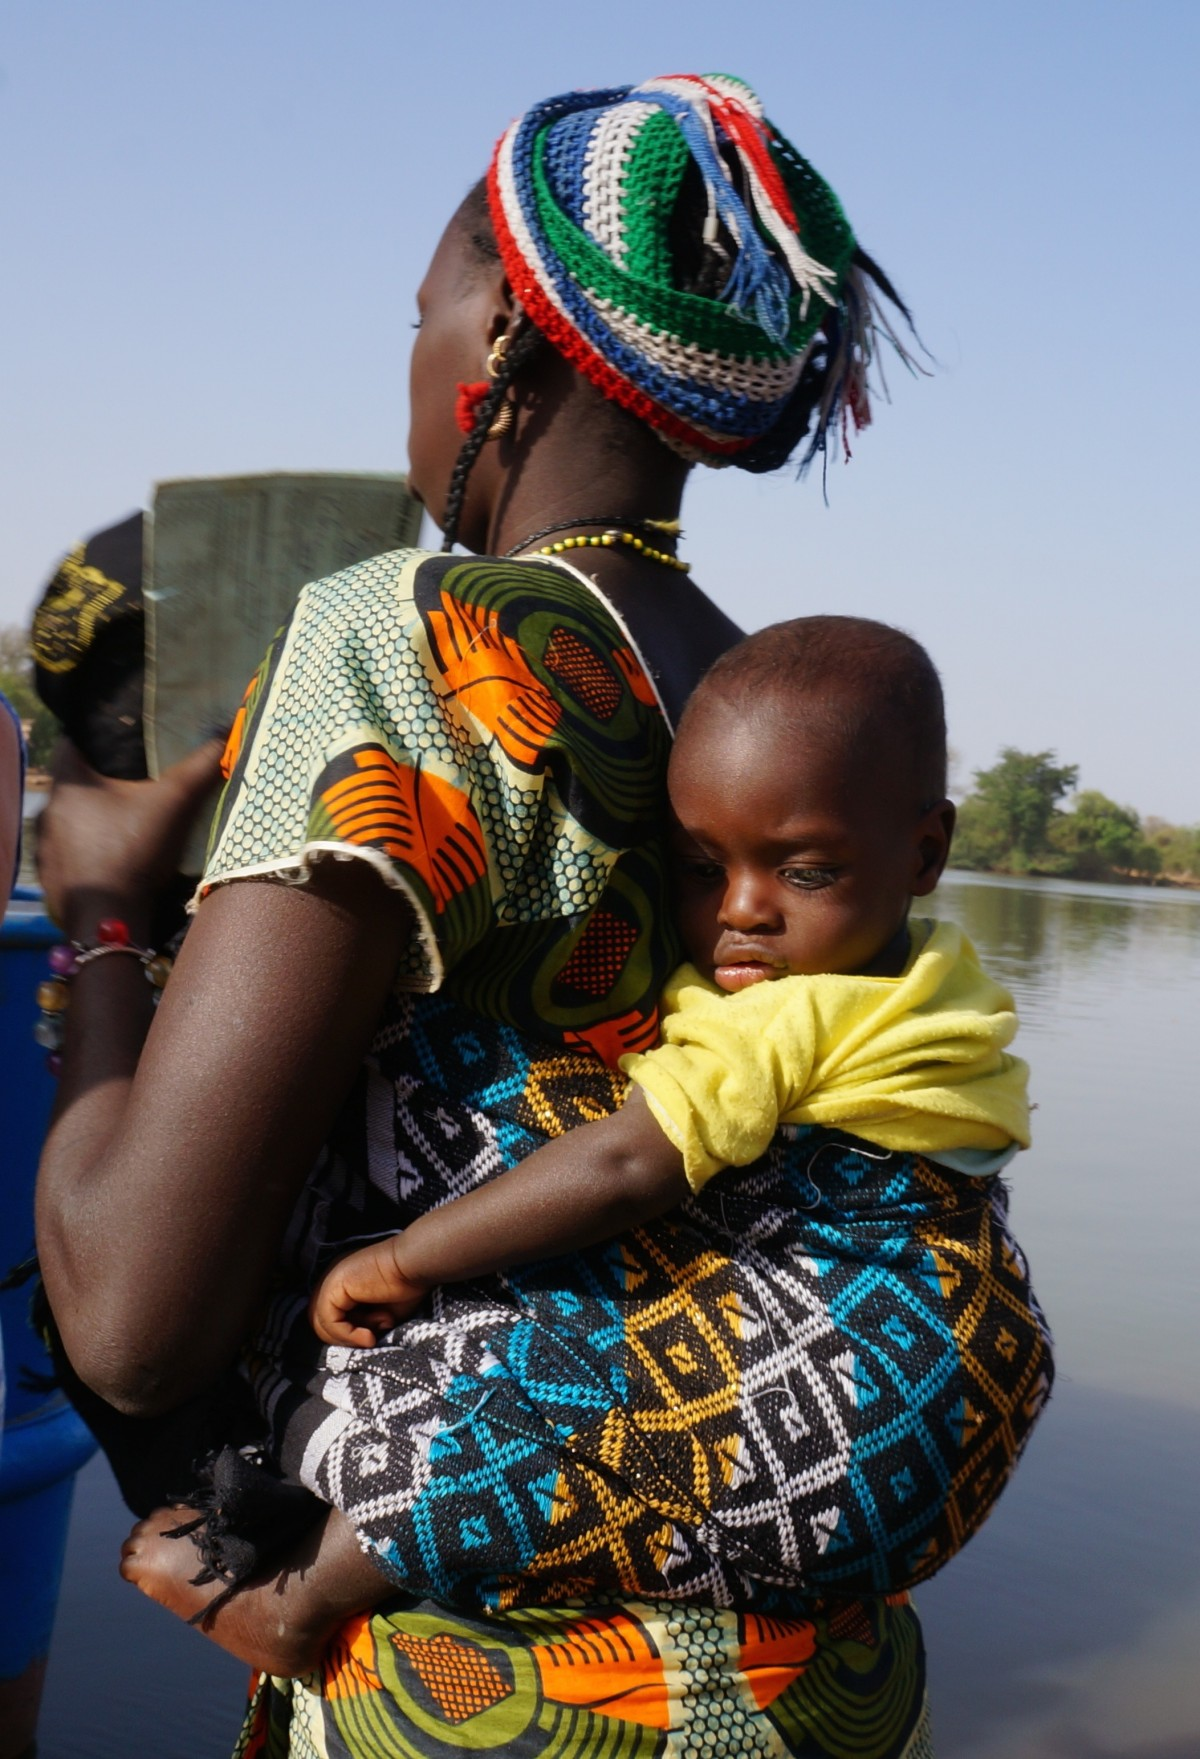 woman_child_carrying_african_black_baby_mom-979253.jpg